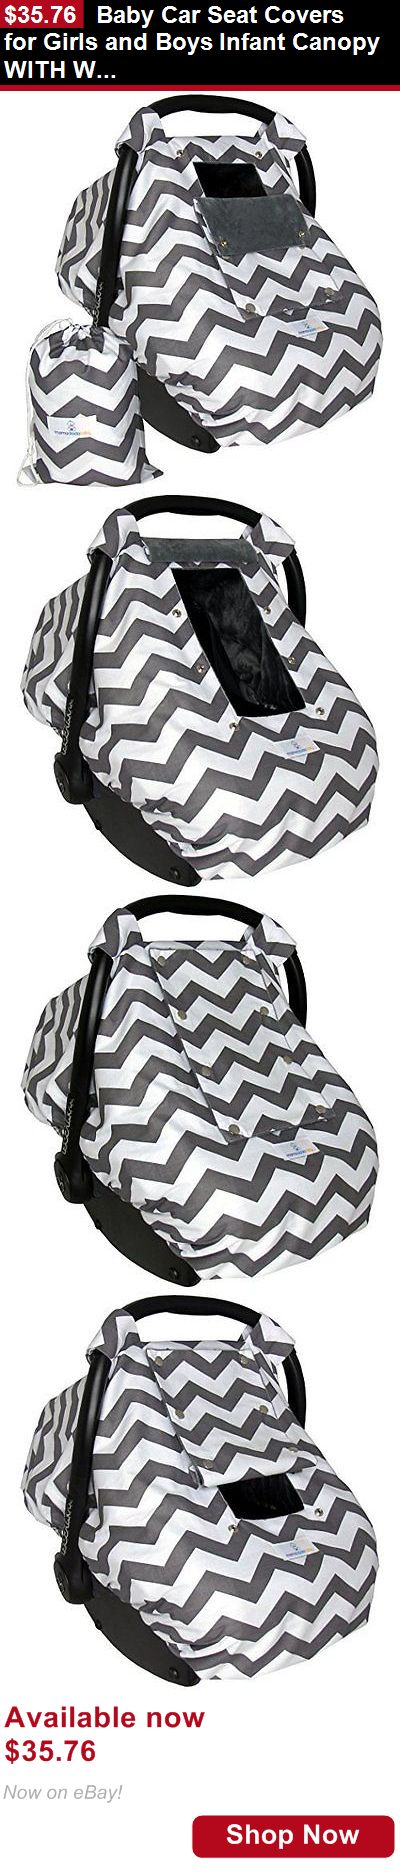 Car Seat Accessories: Baby Car Seat Covers For Girls And Boys Infant Canopy With Window-Flap System... BUY IT NOW ONLY: $35.76